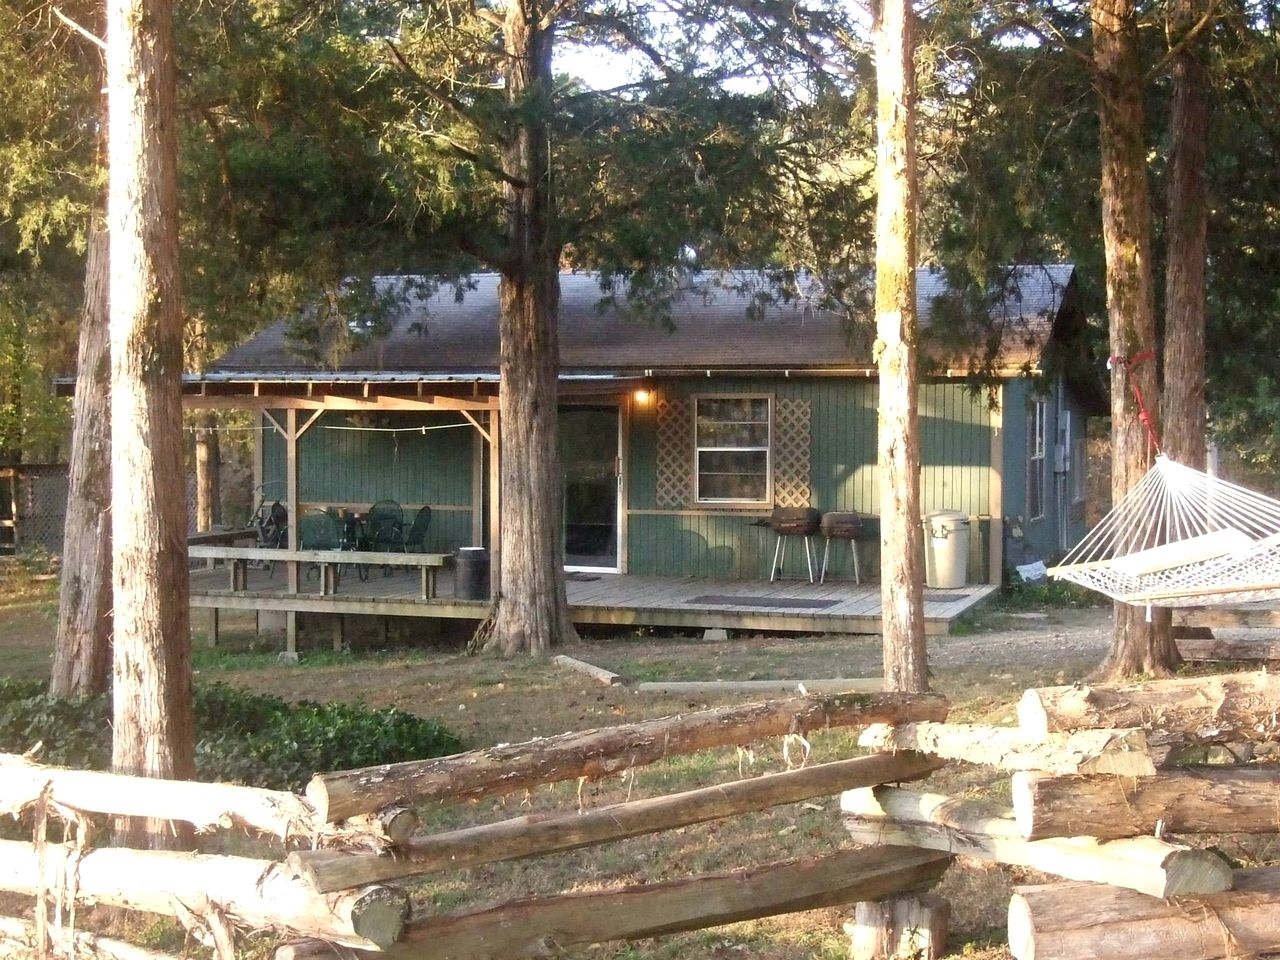 Cabins (Pencil Bluff, Arkansas, United States)